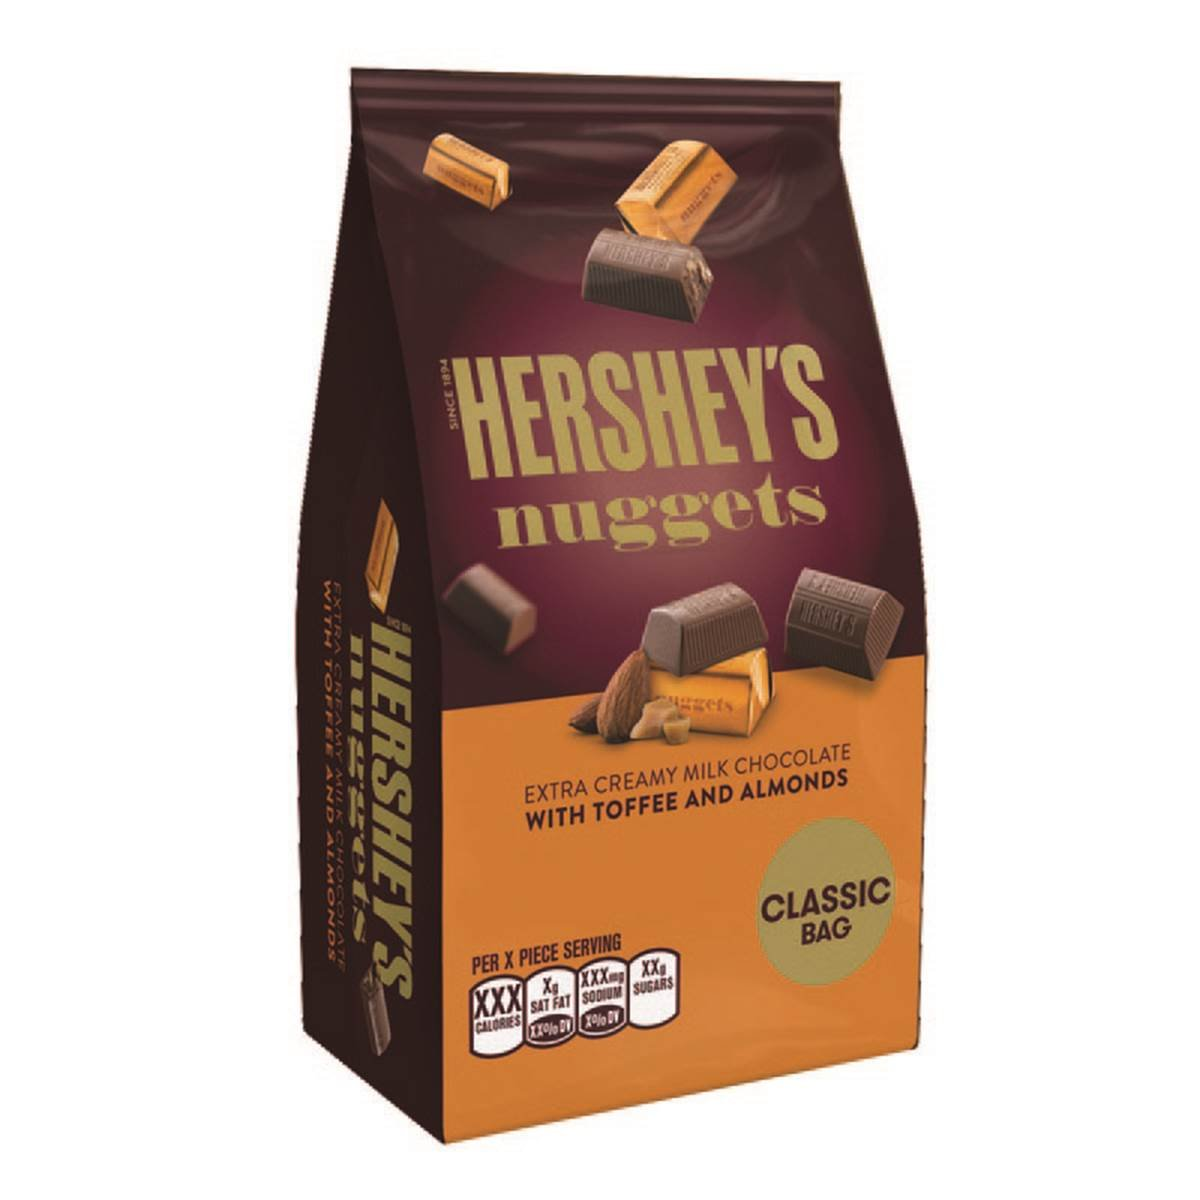 Amazon.com : HERSHEY'S Nuggets Chocolate Candy With